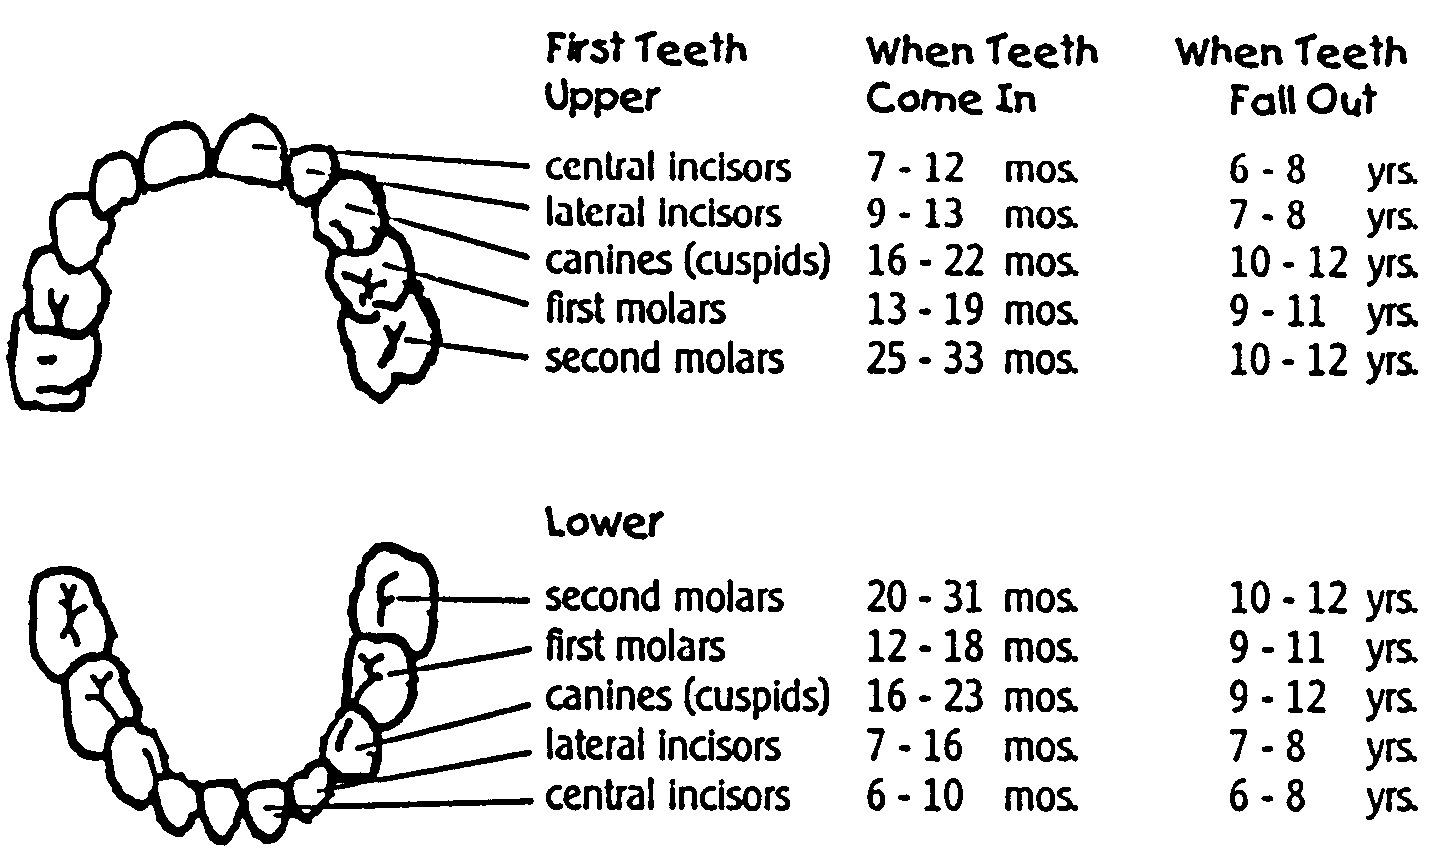 The Tooth Fairy Index